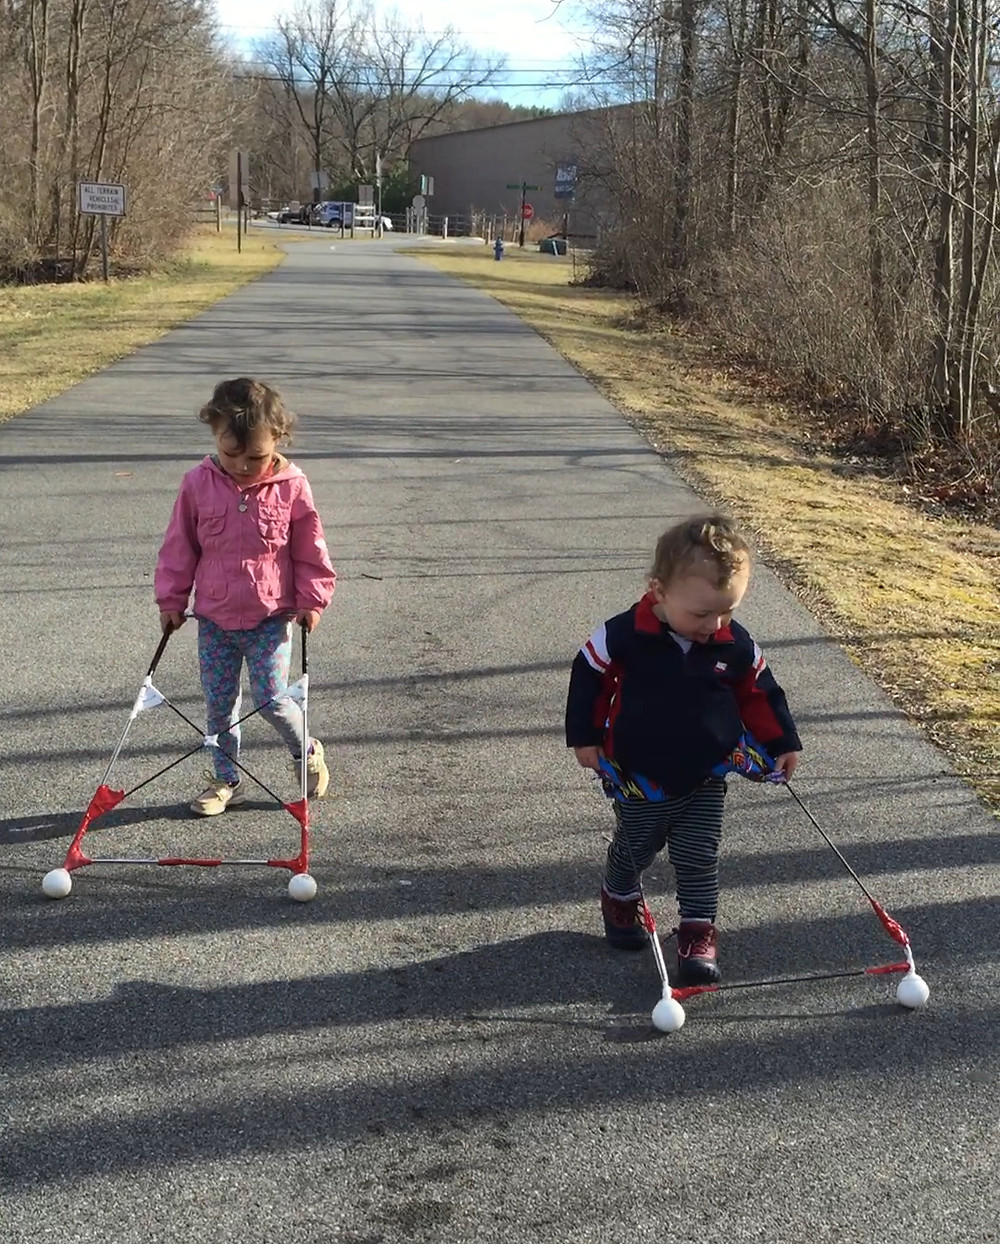 Two children under five are walking on an outdoor walking path. Lily is pushing a rectangular cane with black, white and red tape and rolling tips. Logan is wearing the belt cane described in this article.